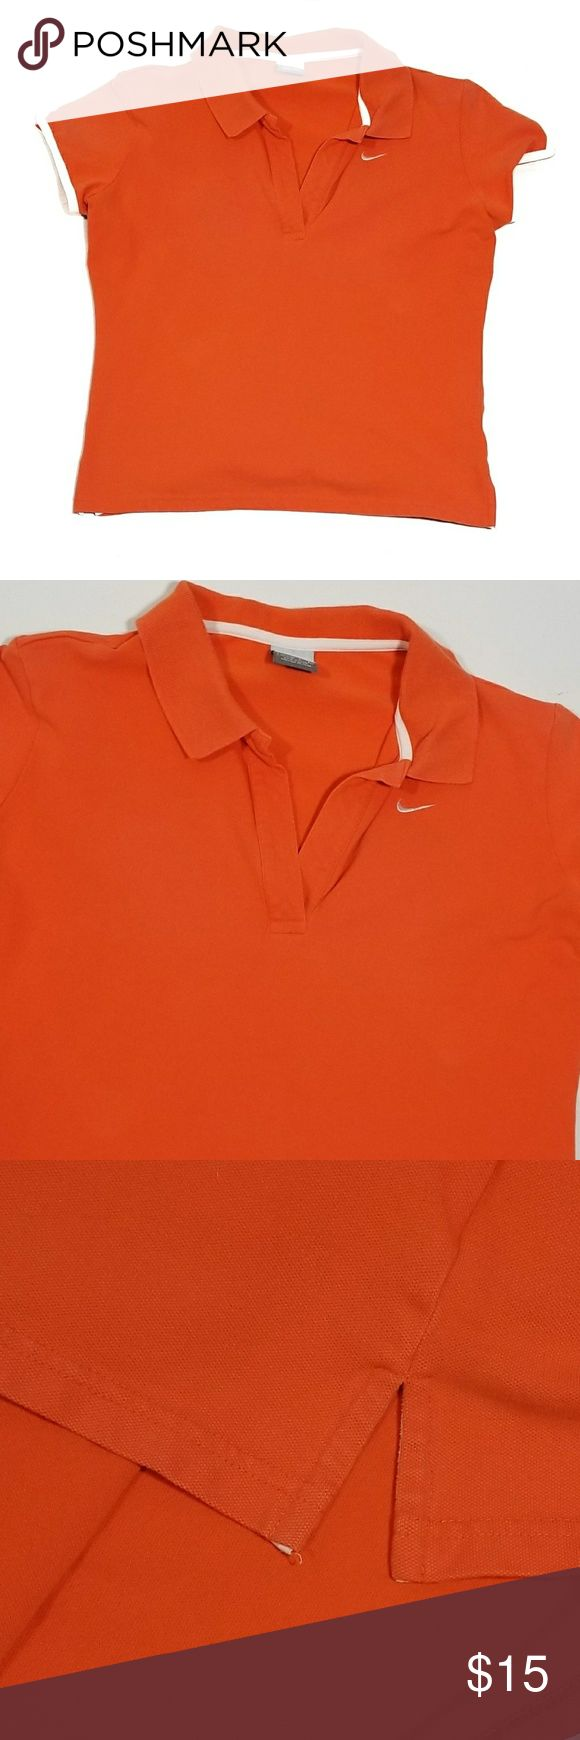 Nike Orange Short Sleeve Polo - Size Large Nike short sleeve polo. Orange color, size large.  Does not have buttons on the collar. Nike Tops